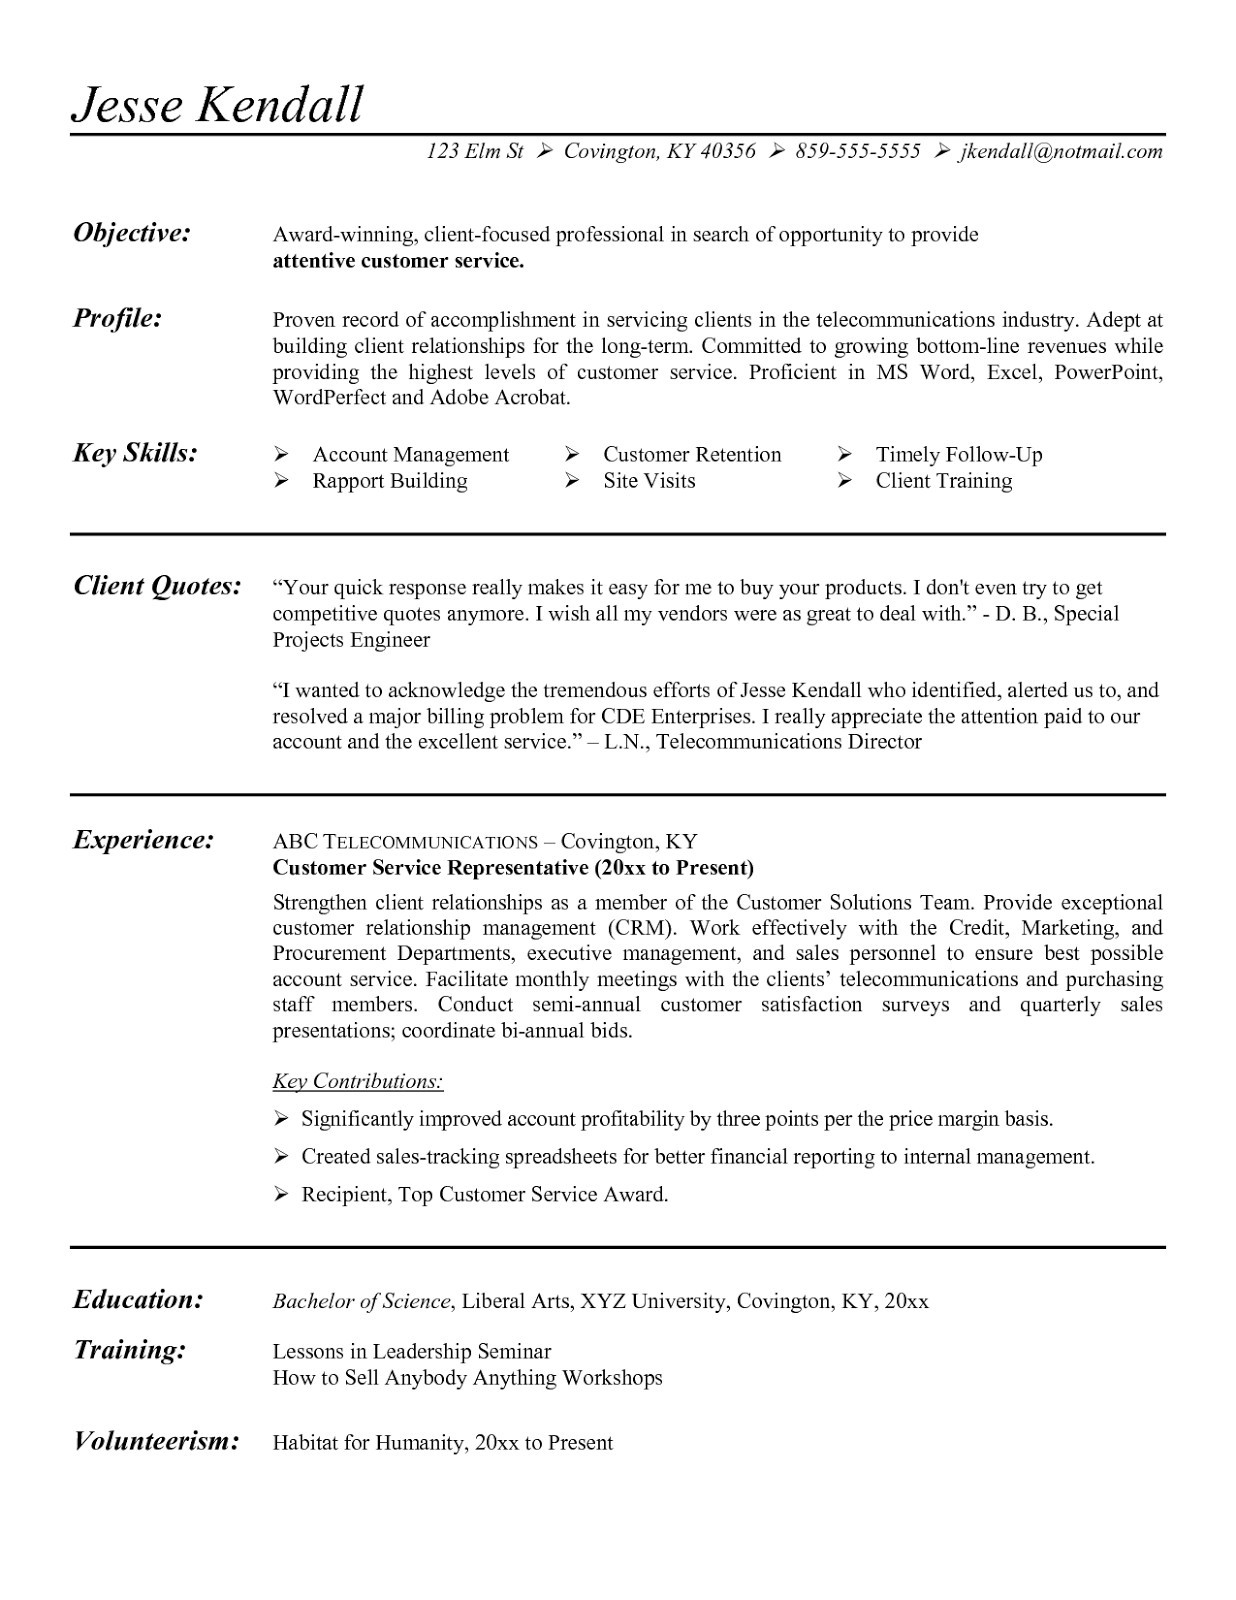 Product Marketing Manager Resume - Resume for Customer Service Inspirational Finance Manager Resume New